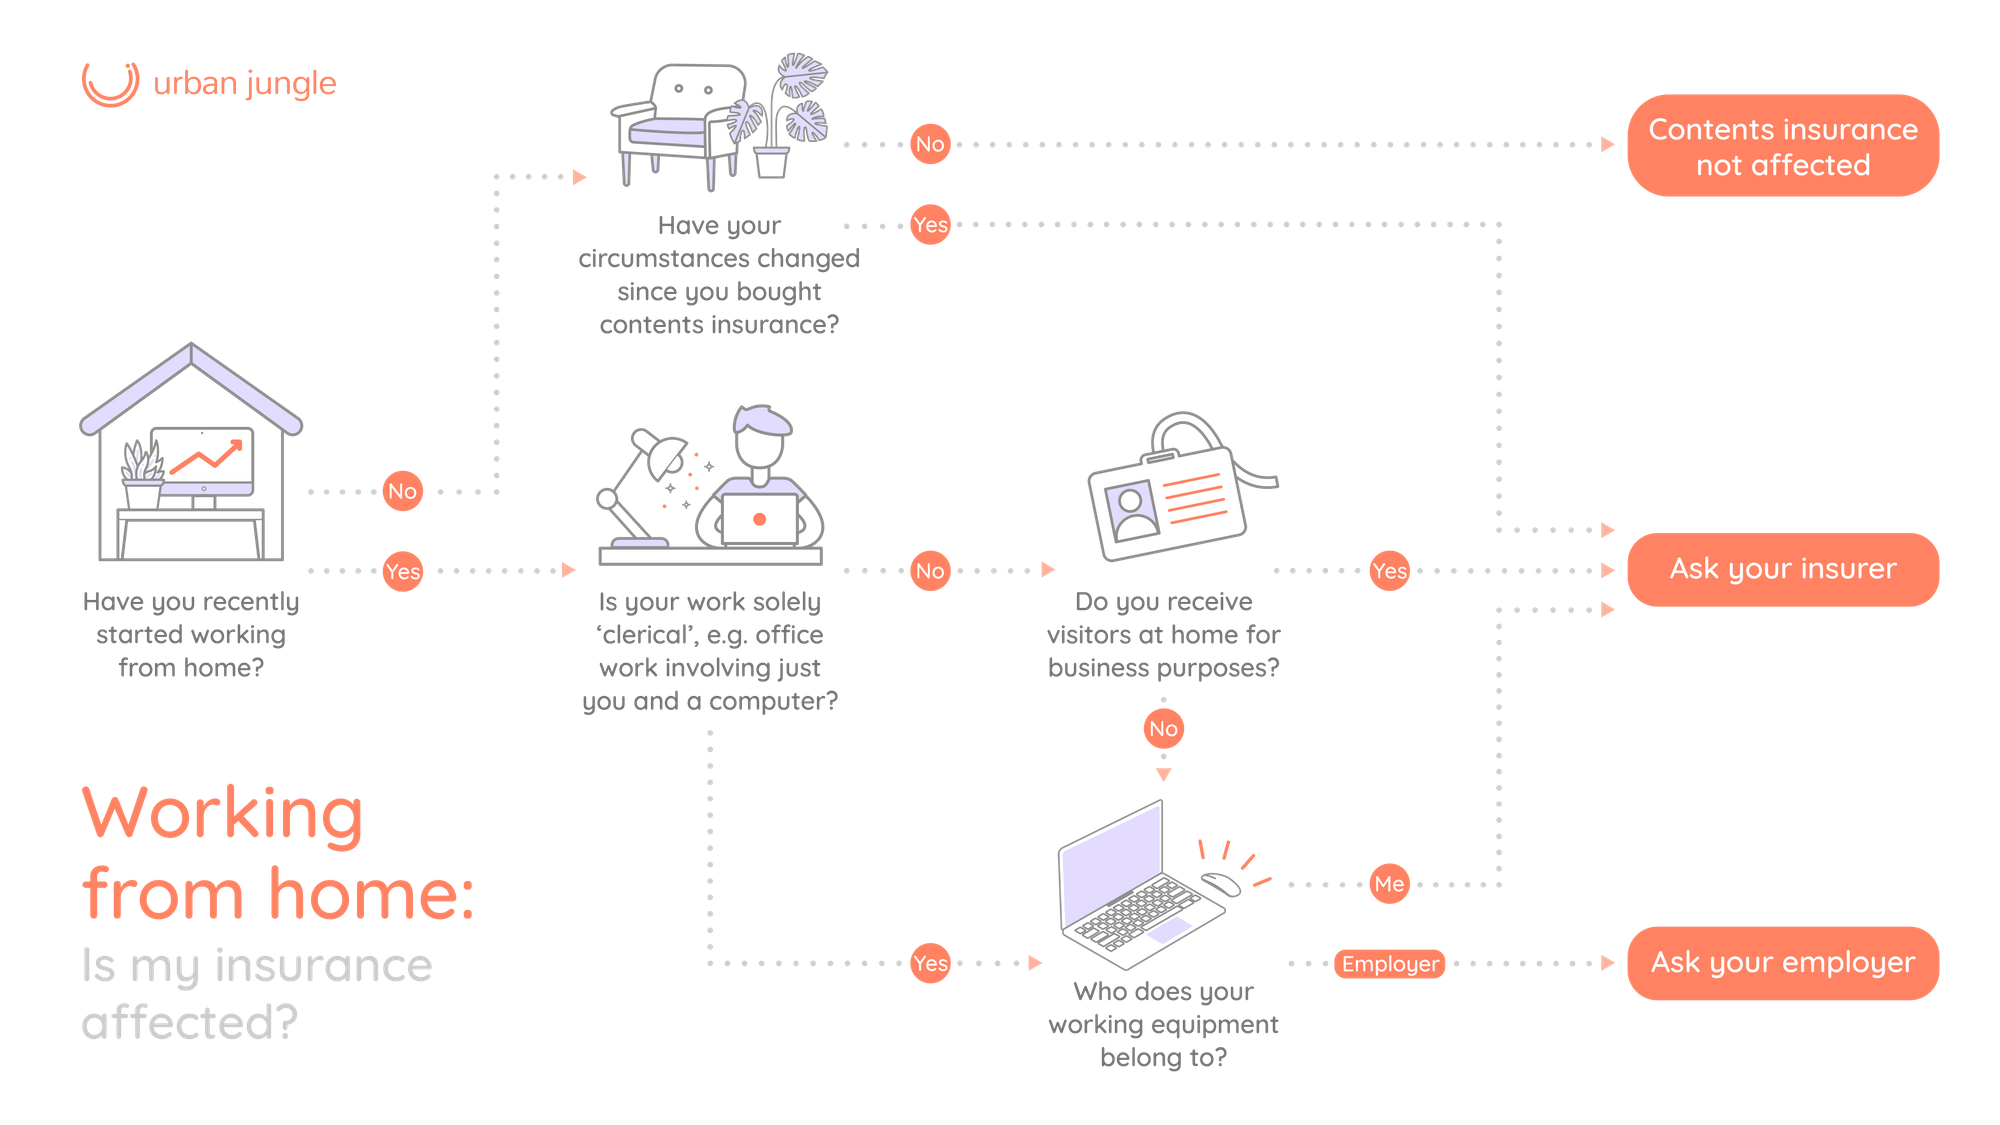 Will my contents insurance be affect post lockdown? Flow chart to help guide you